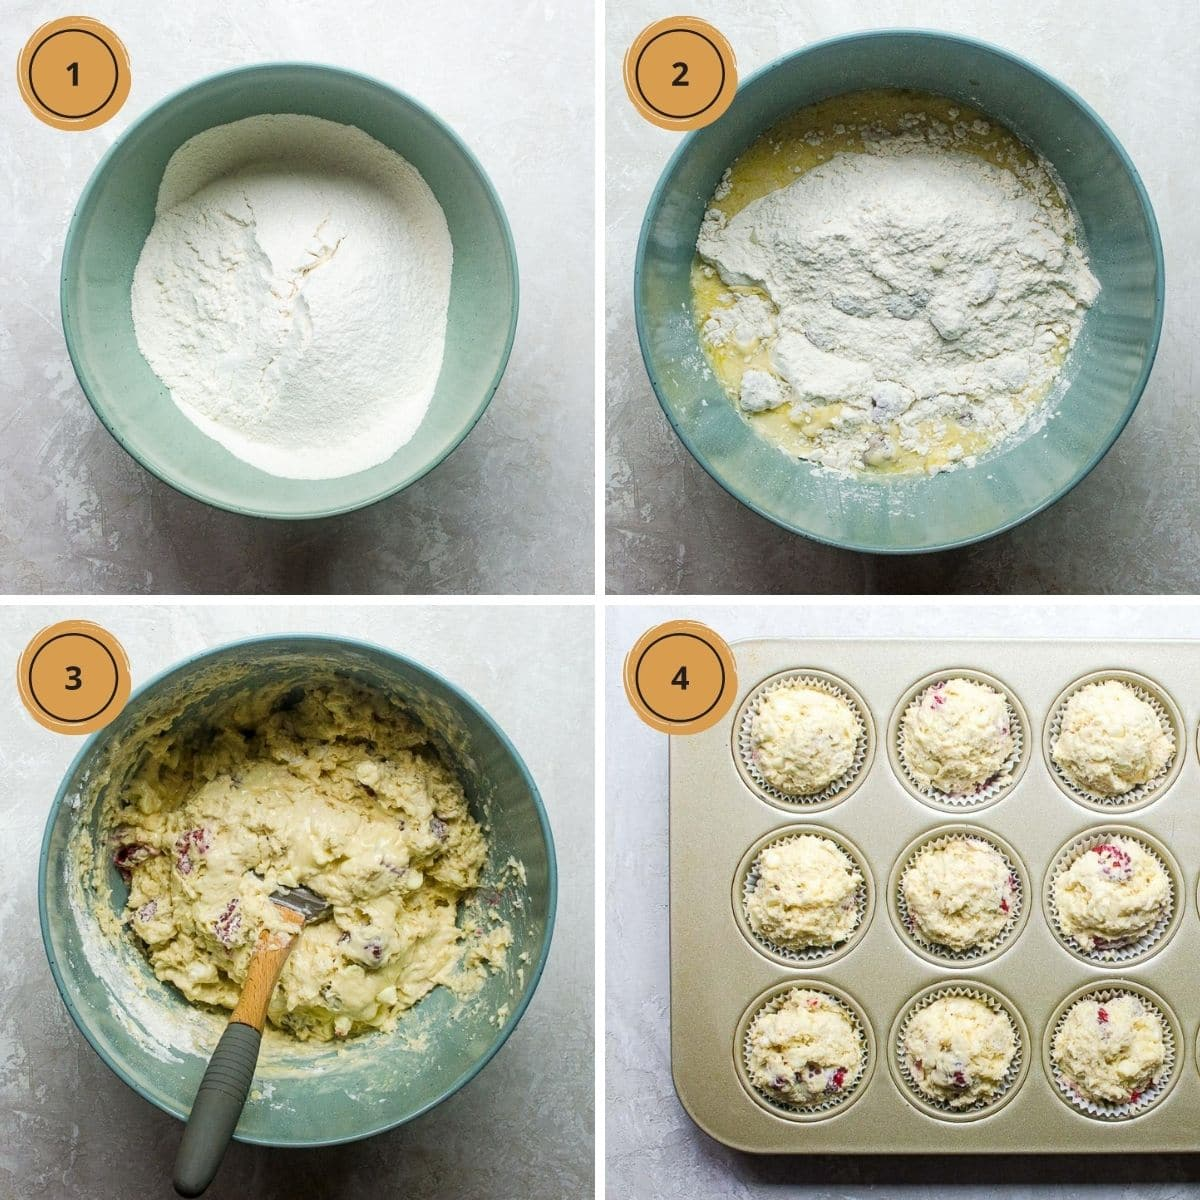 Four numbered steps for making raspberry white chocolate muffins.